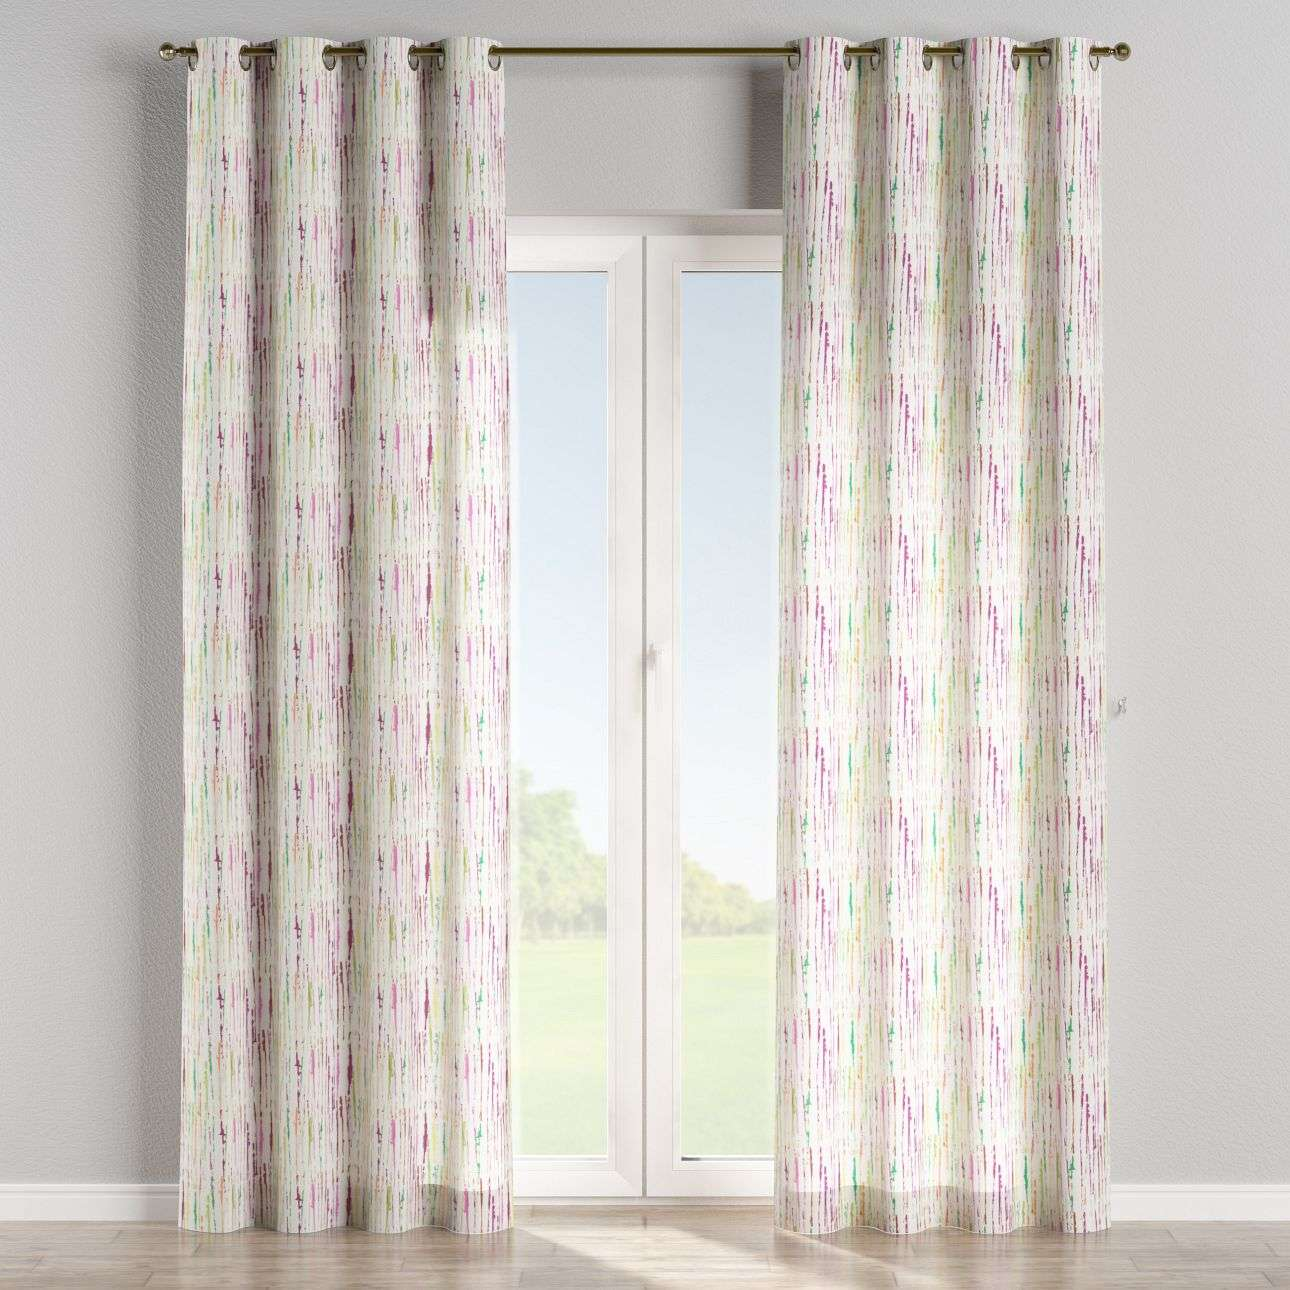 Eyelet curtains 130 x 260 cm (51 x 102 inch) in collection Aquarelle, fabric: 140-72